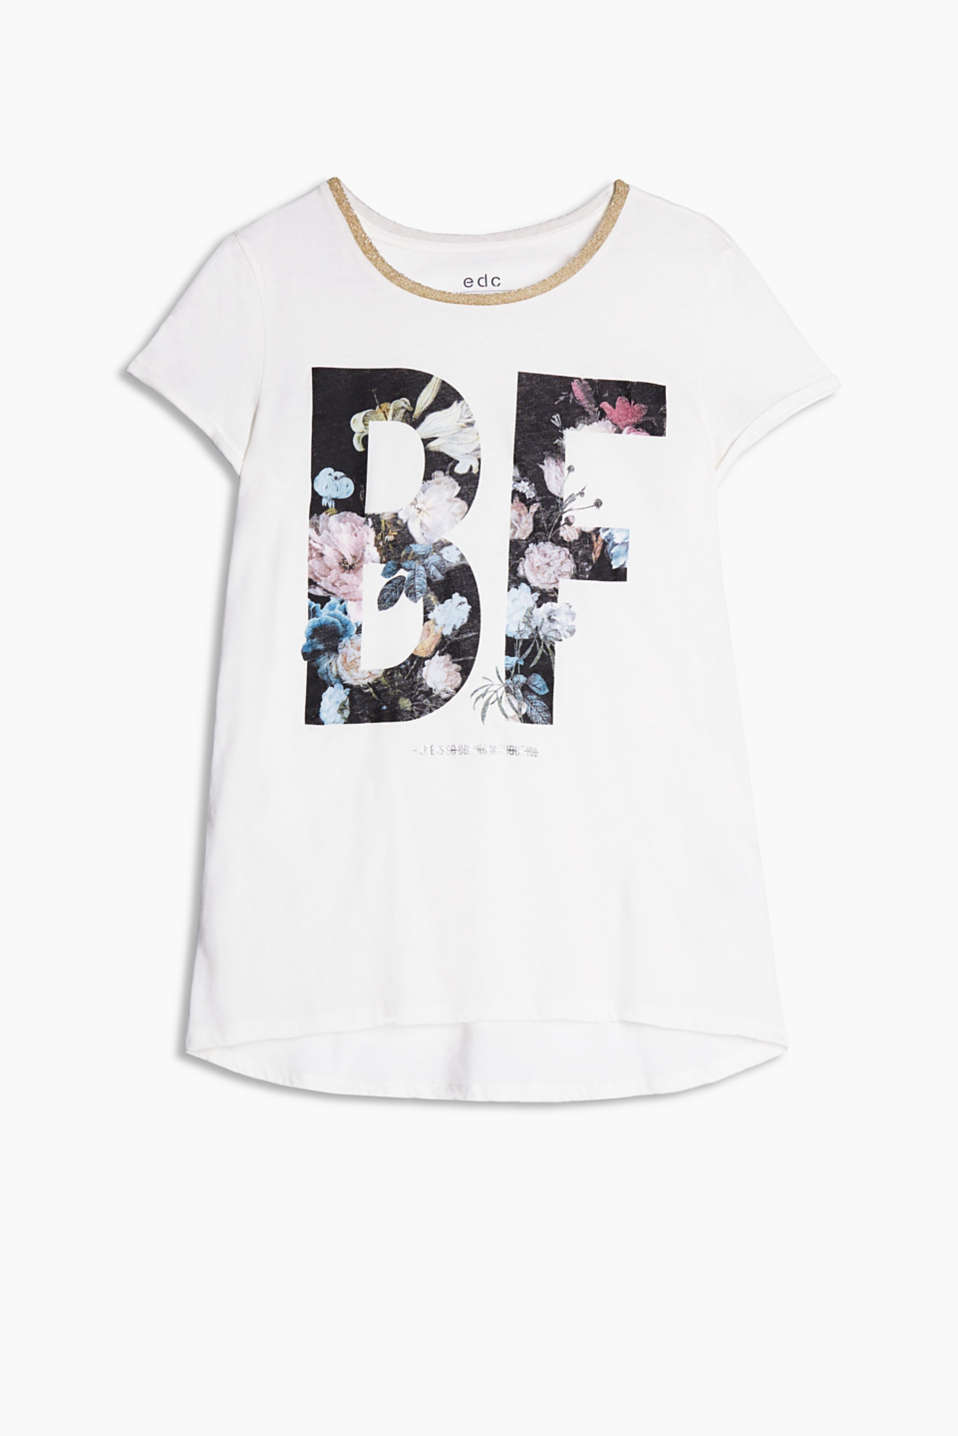 Pure cotton-jersey T-shirt with a floral letter print, a glittering ribbed neckline and a high-low hem